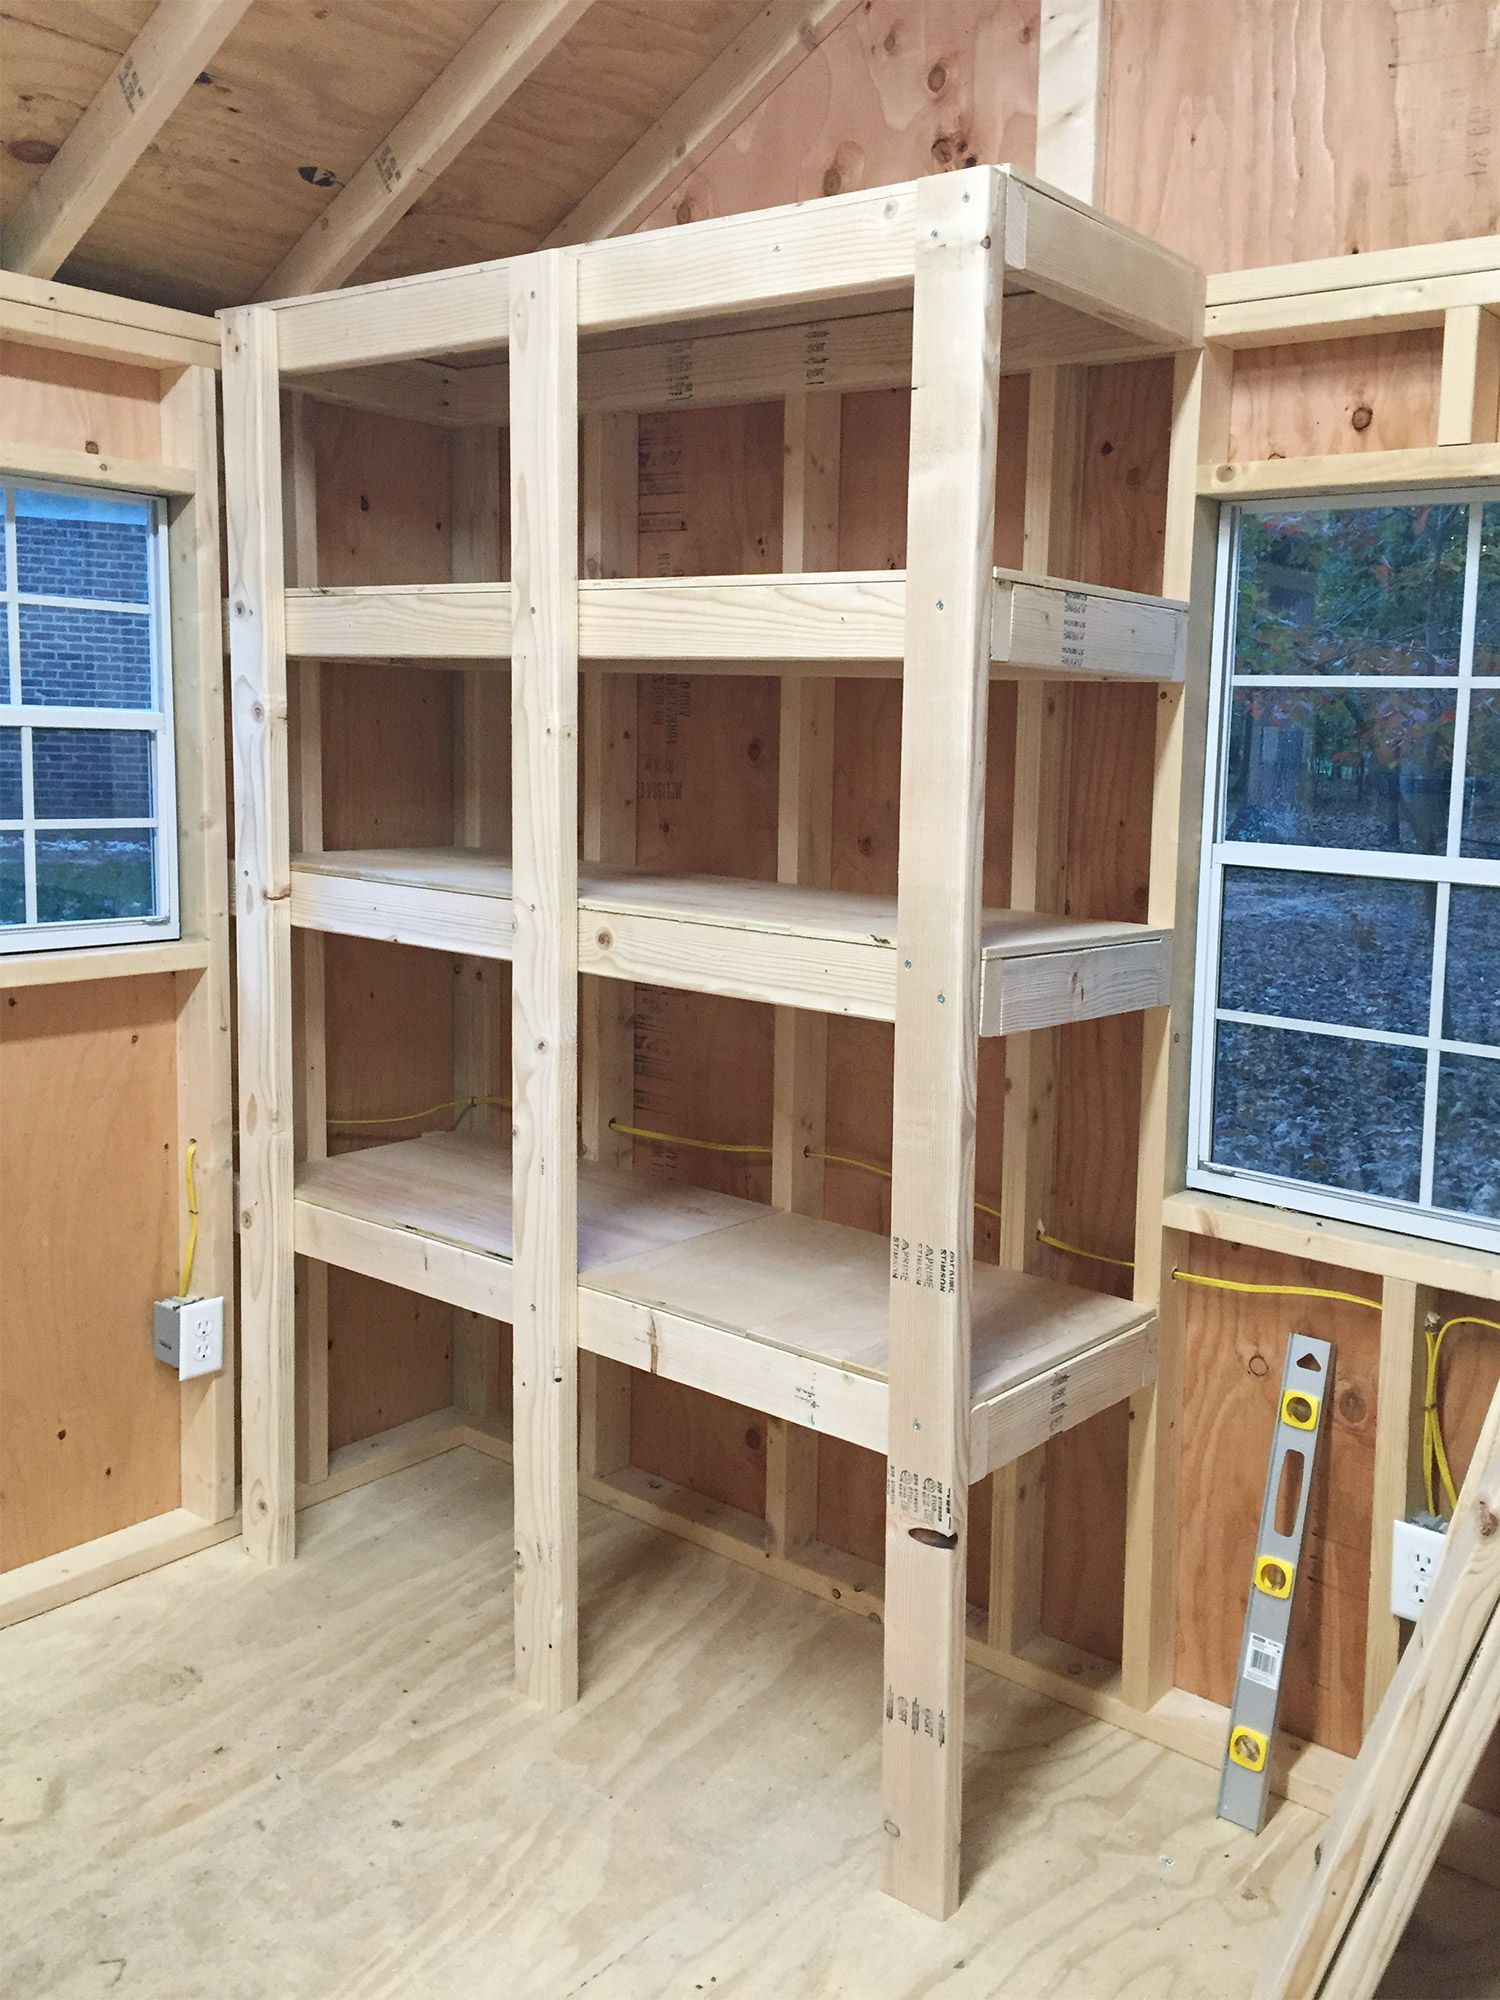 4 Shed Storage Ideas For Tons Of Added Function Workshop ShelvingShed